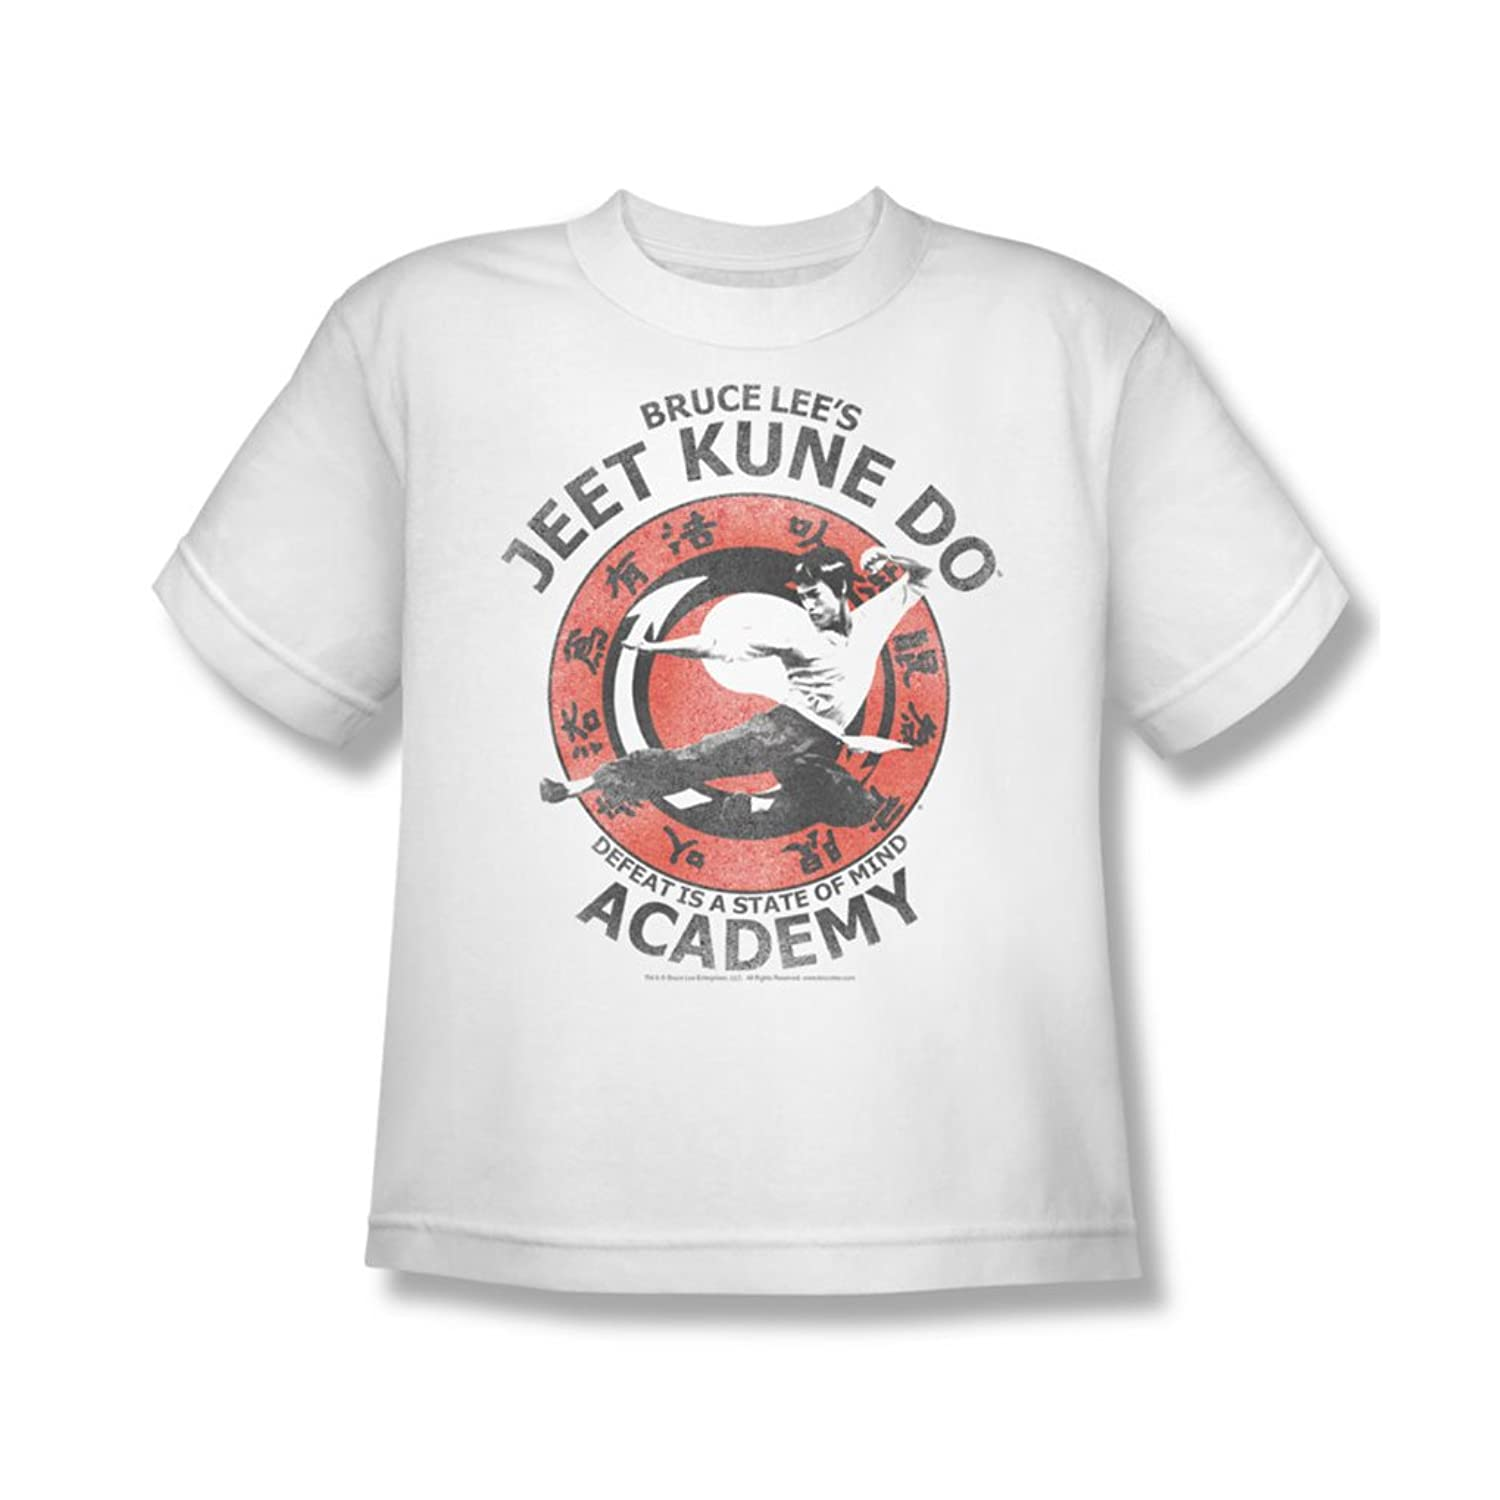 Bruce Lee - Jeet Kune Do Youth T-Shirt In White